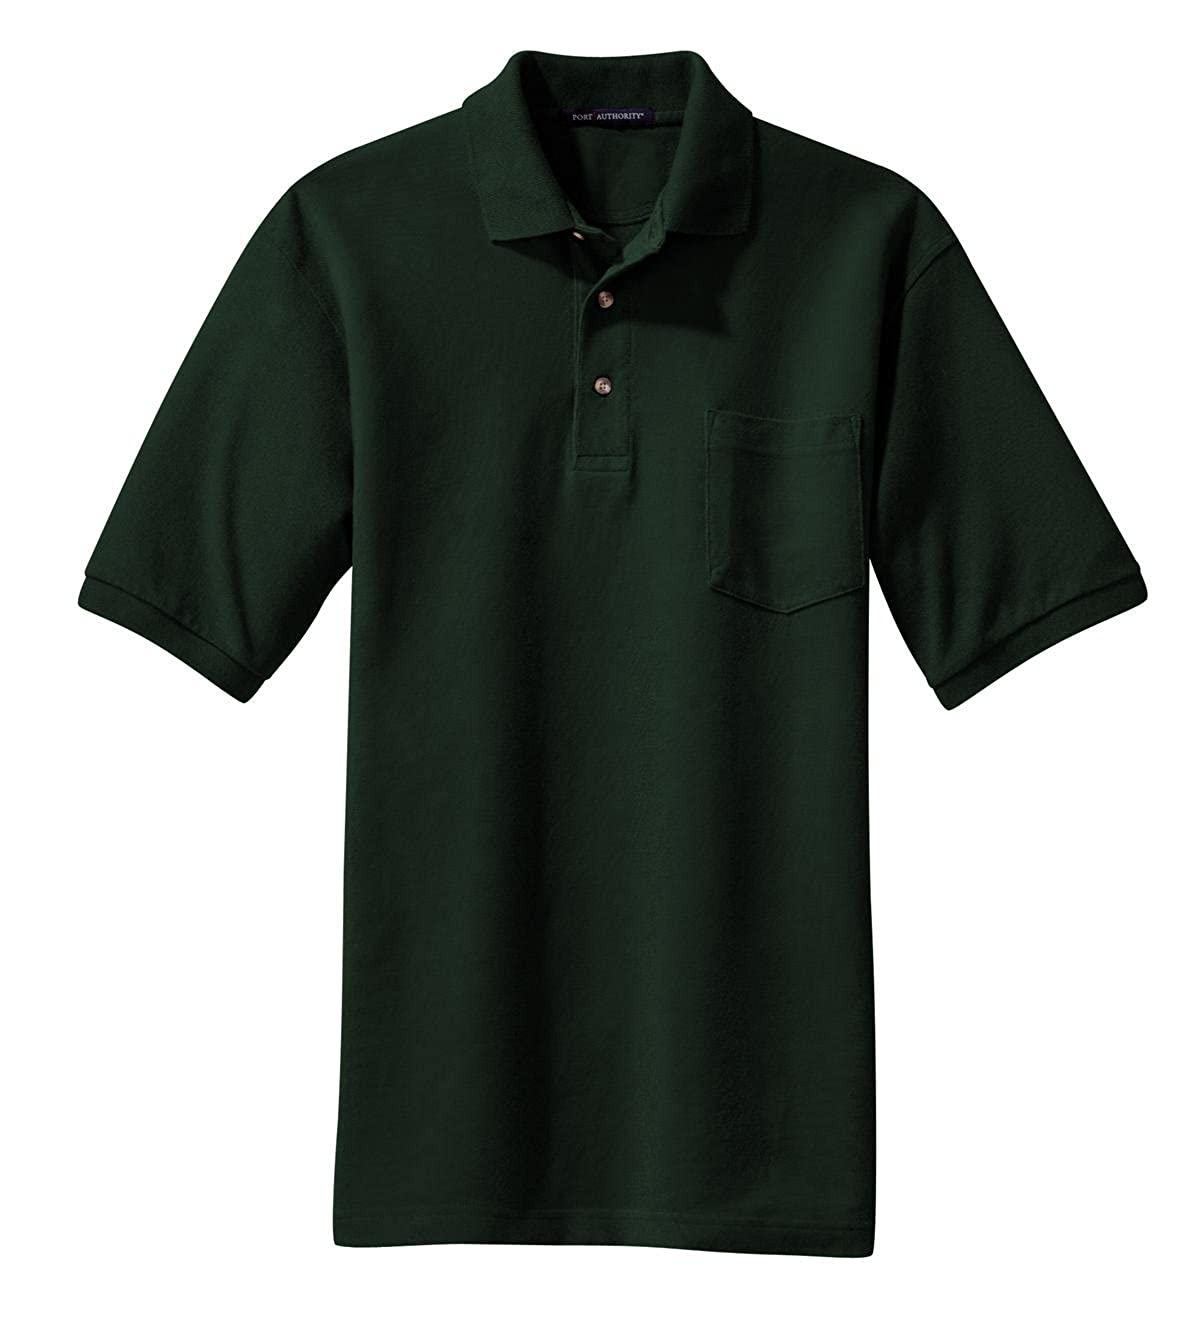 Port Authority Pique Knit Polo with Pocket